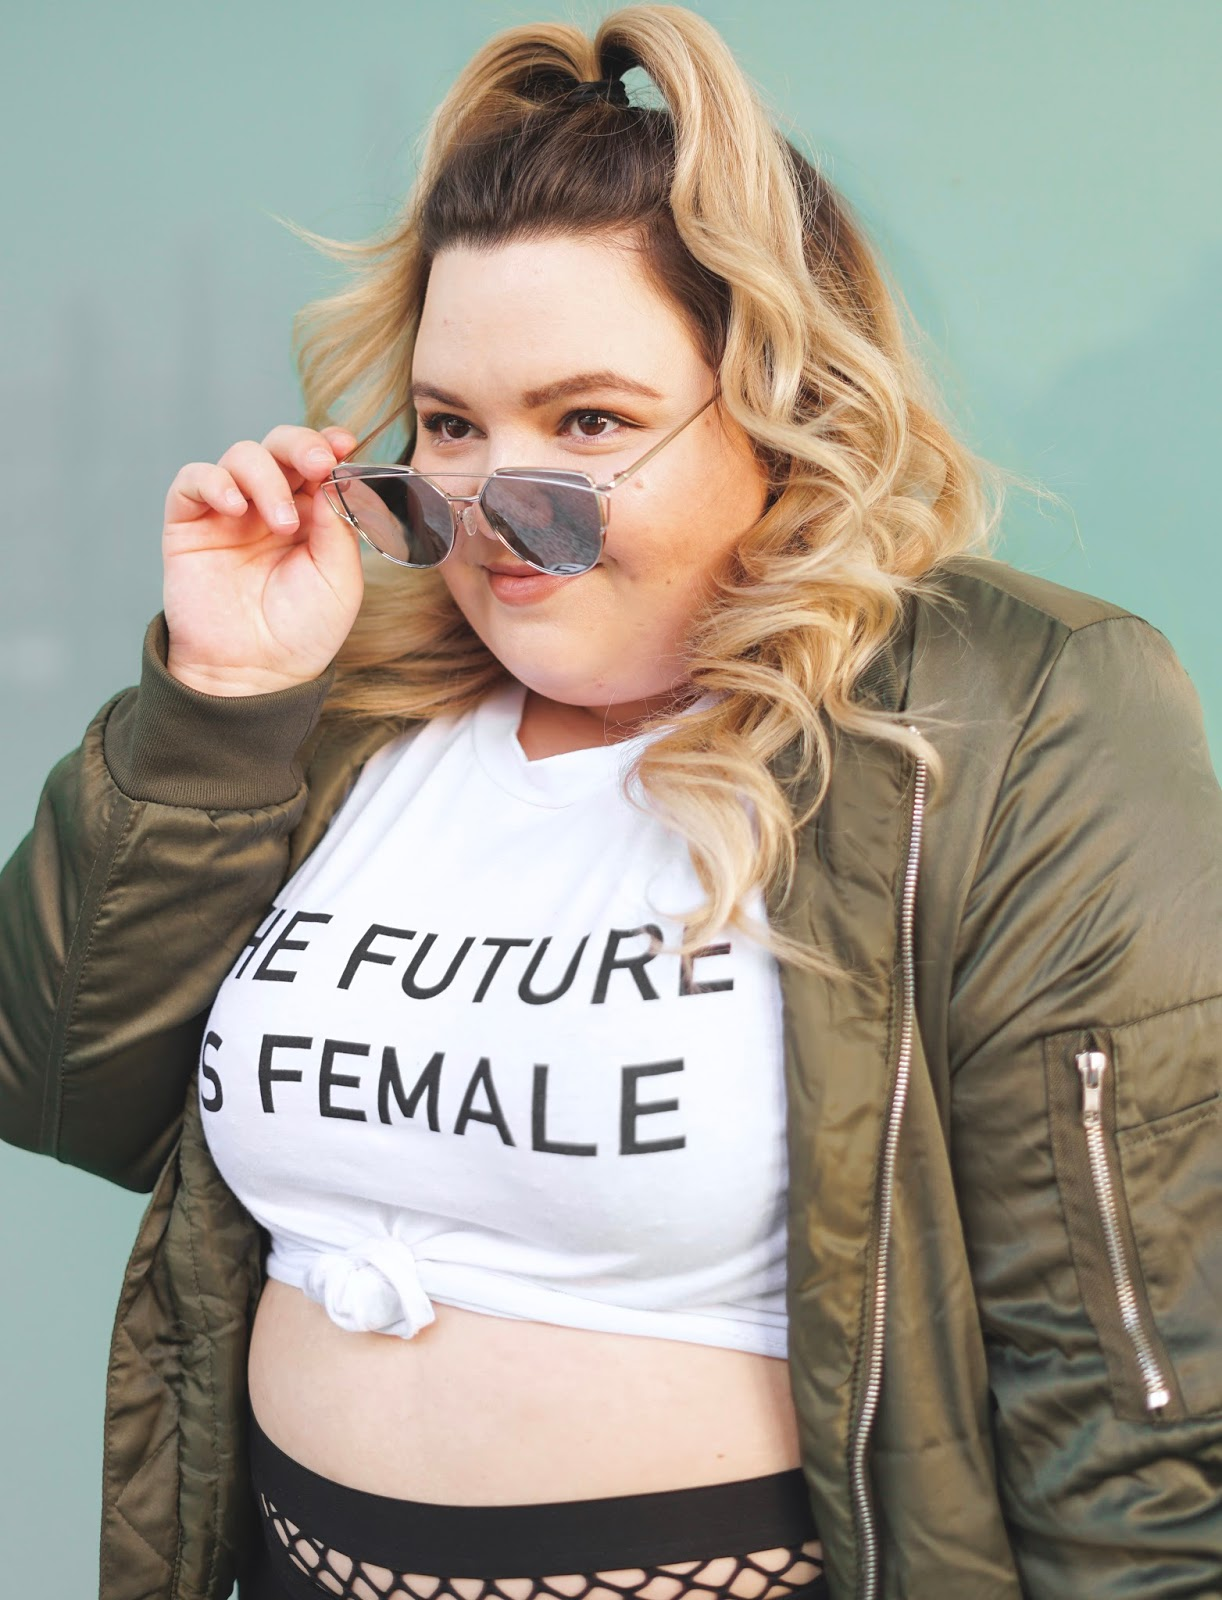 plus size fashion blogger, Chicago plus size model, petite plus, Steve Madden stud sneakers, fishnet plus size waist, plus size fishnet, fishnet joggers, plus model magazine, eff your beauty standards, skorch magazine, natalie in the city, Chicago fashion, midwest blogger, fashion nova curve